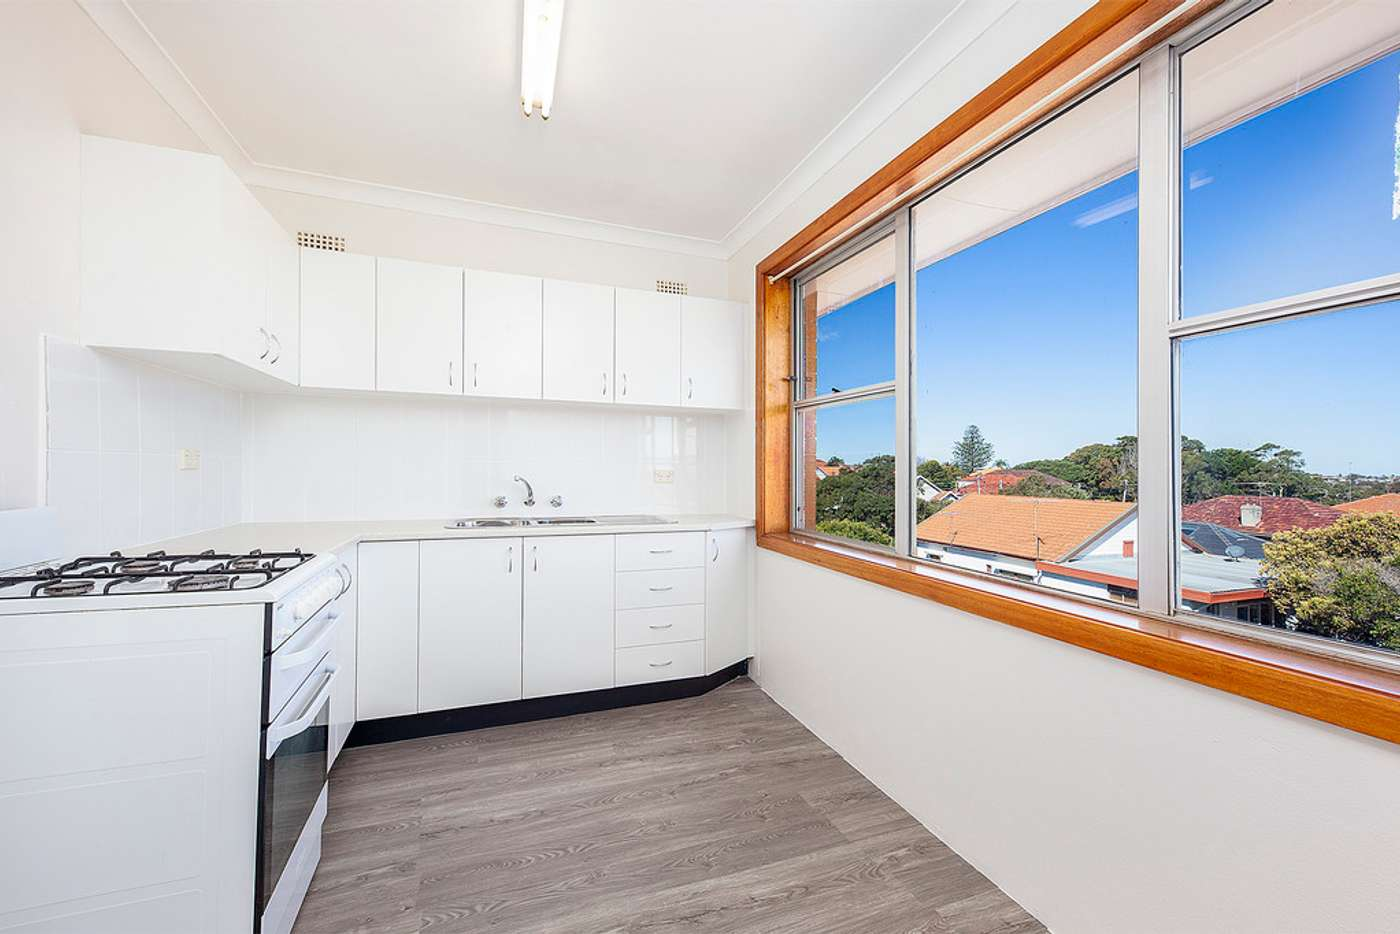 Fifth view of Homely apartment listing, 12/285 MAROUBRA ROAD, Maroubra NSW 2035